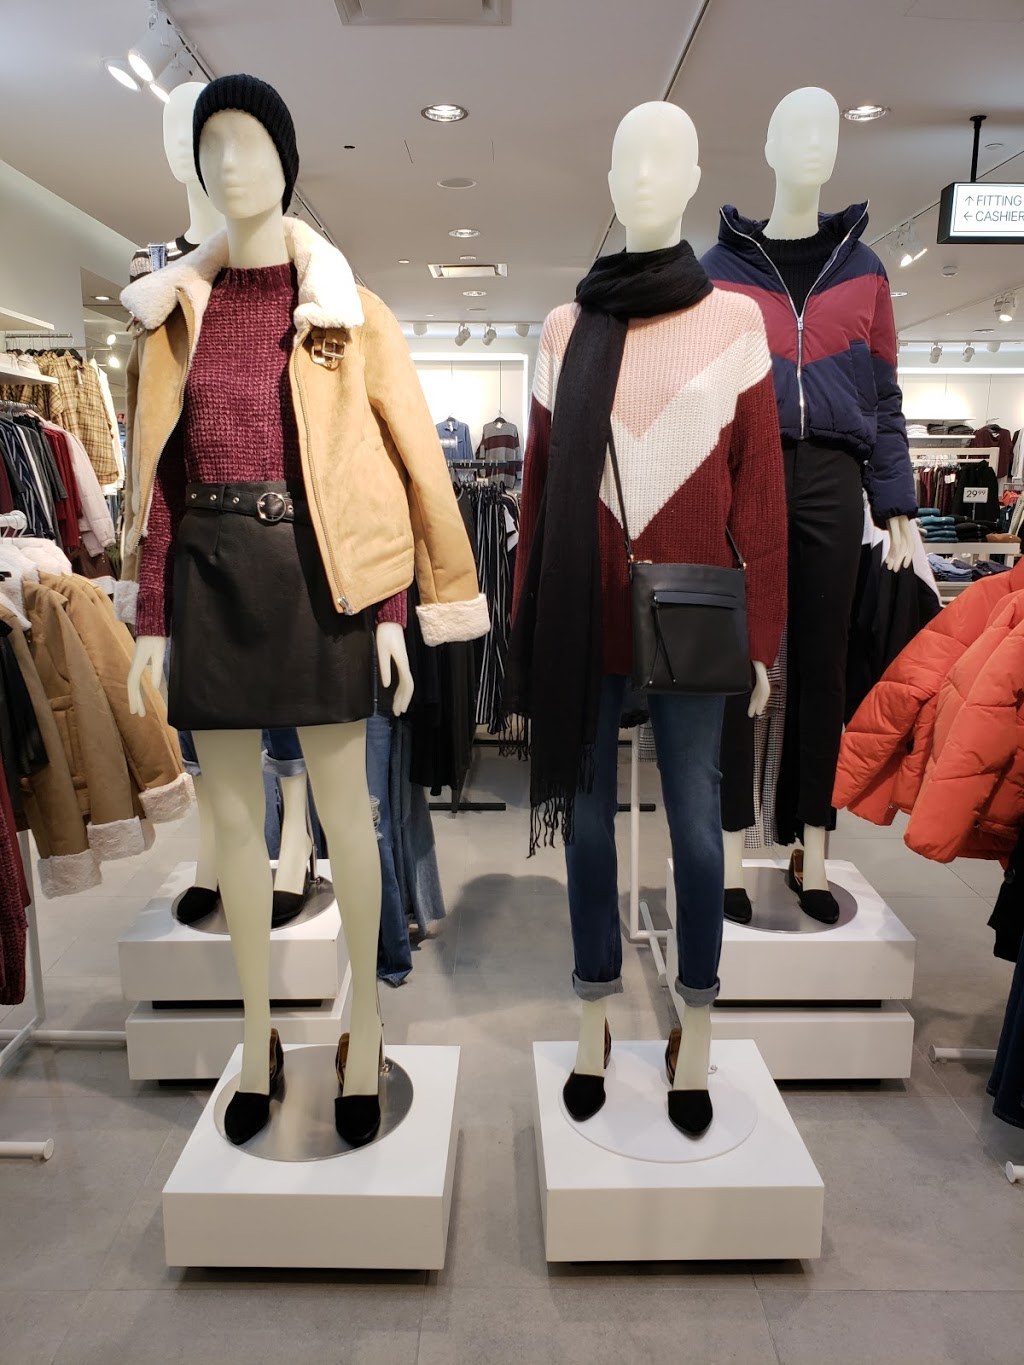 H&M | clothing store | 999 Upper Wentworth St, Hamilton, ON L9A 4X5, Canada | 8552727007 OR +1 855-272-7007